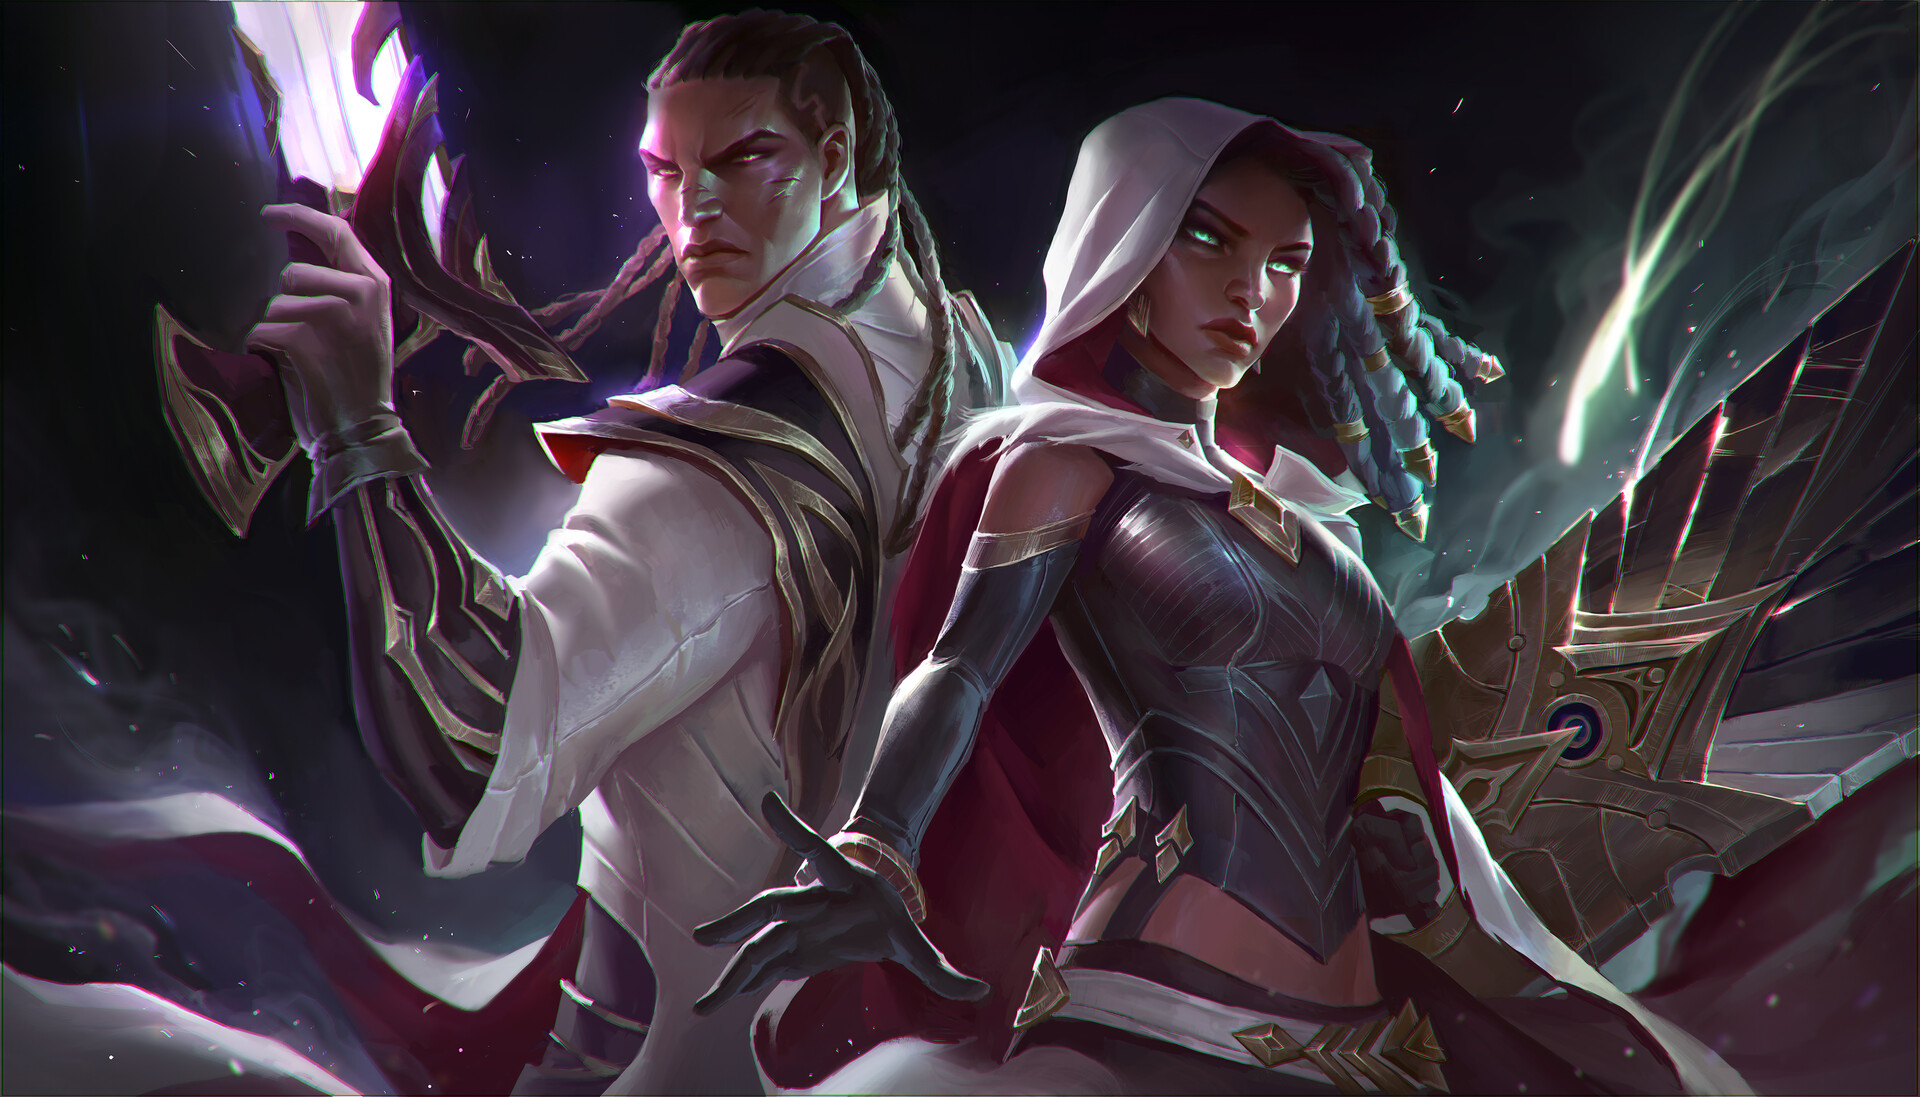 ArtStation - Lucian and Senna Splash, Oviya Vendan